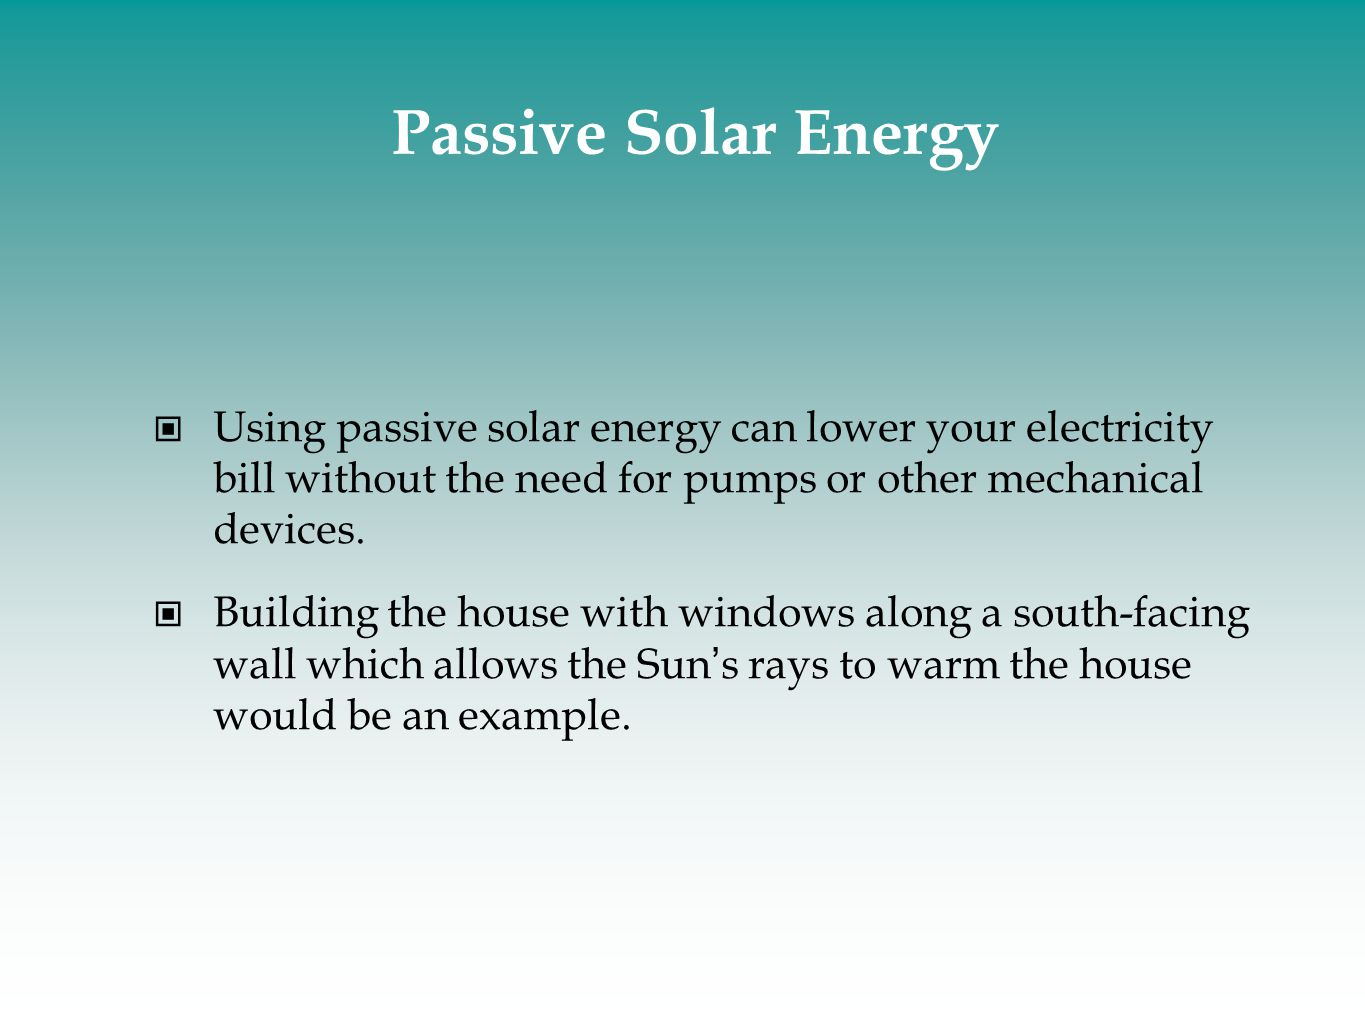 Passive Solar Energy Using passive solar energy can lower your electricity bill without the need for pumps or other mechanical devices.